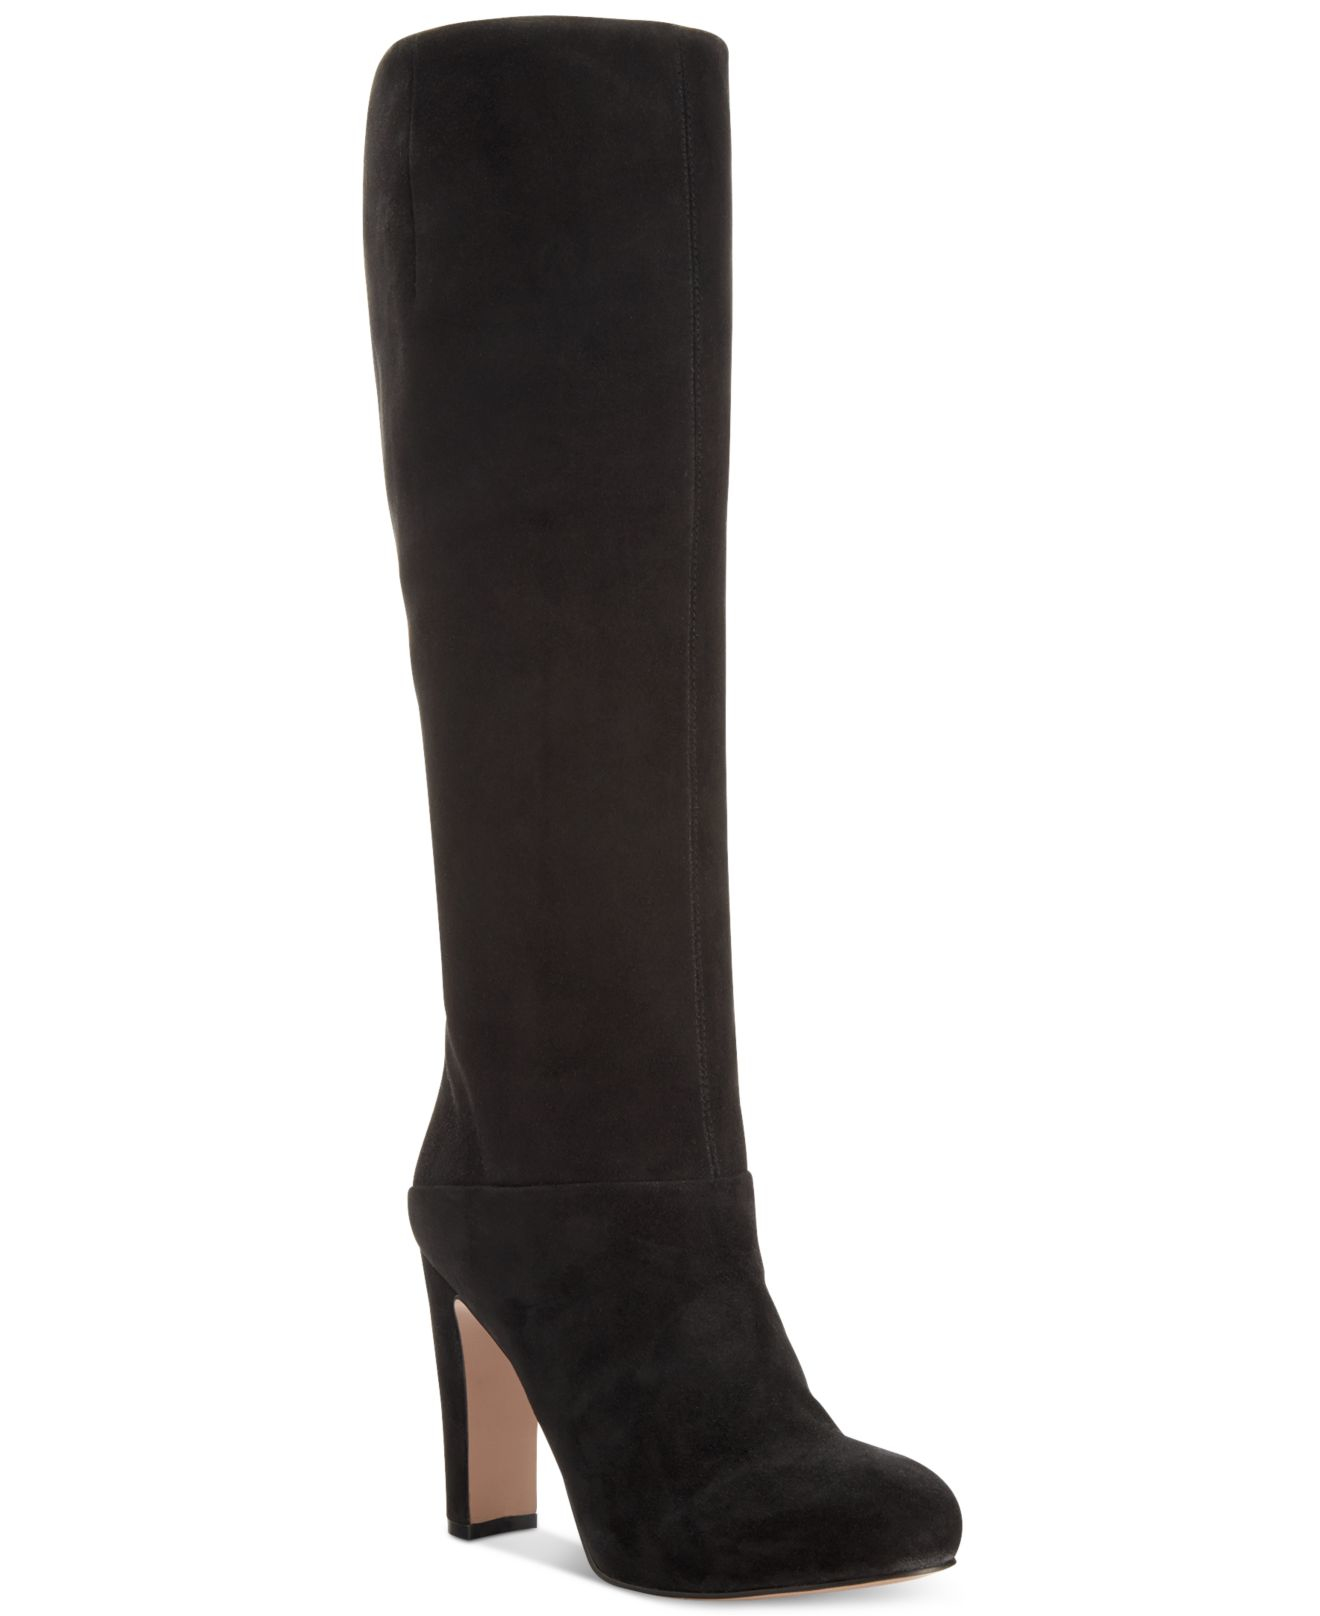 Nine west Gofish Suede Tall Dress Boots in Black | Lyst